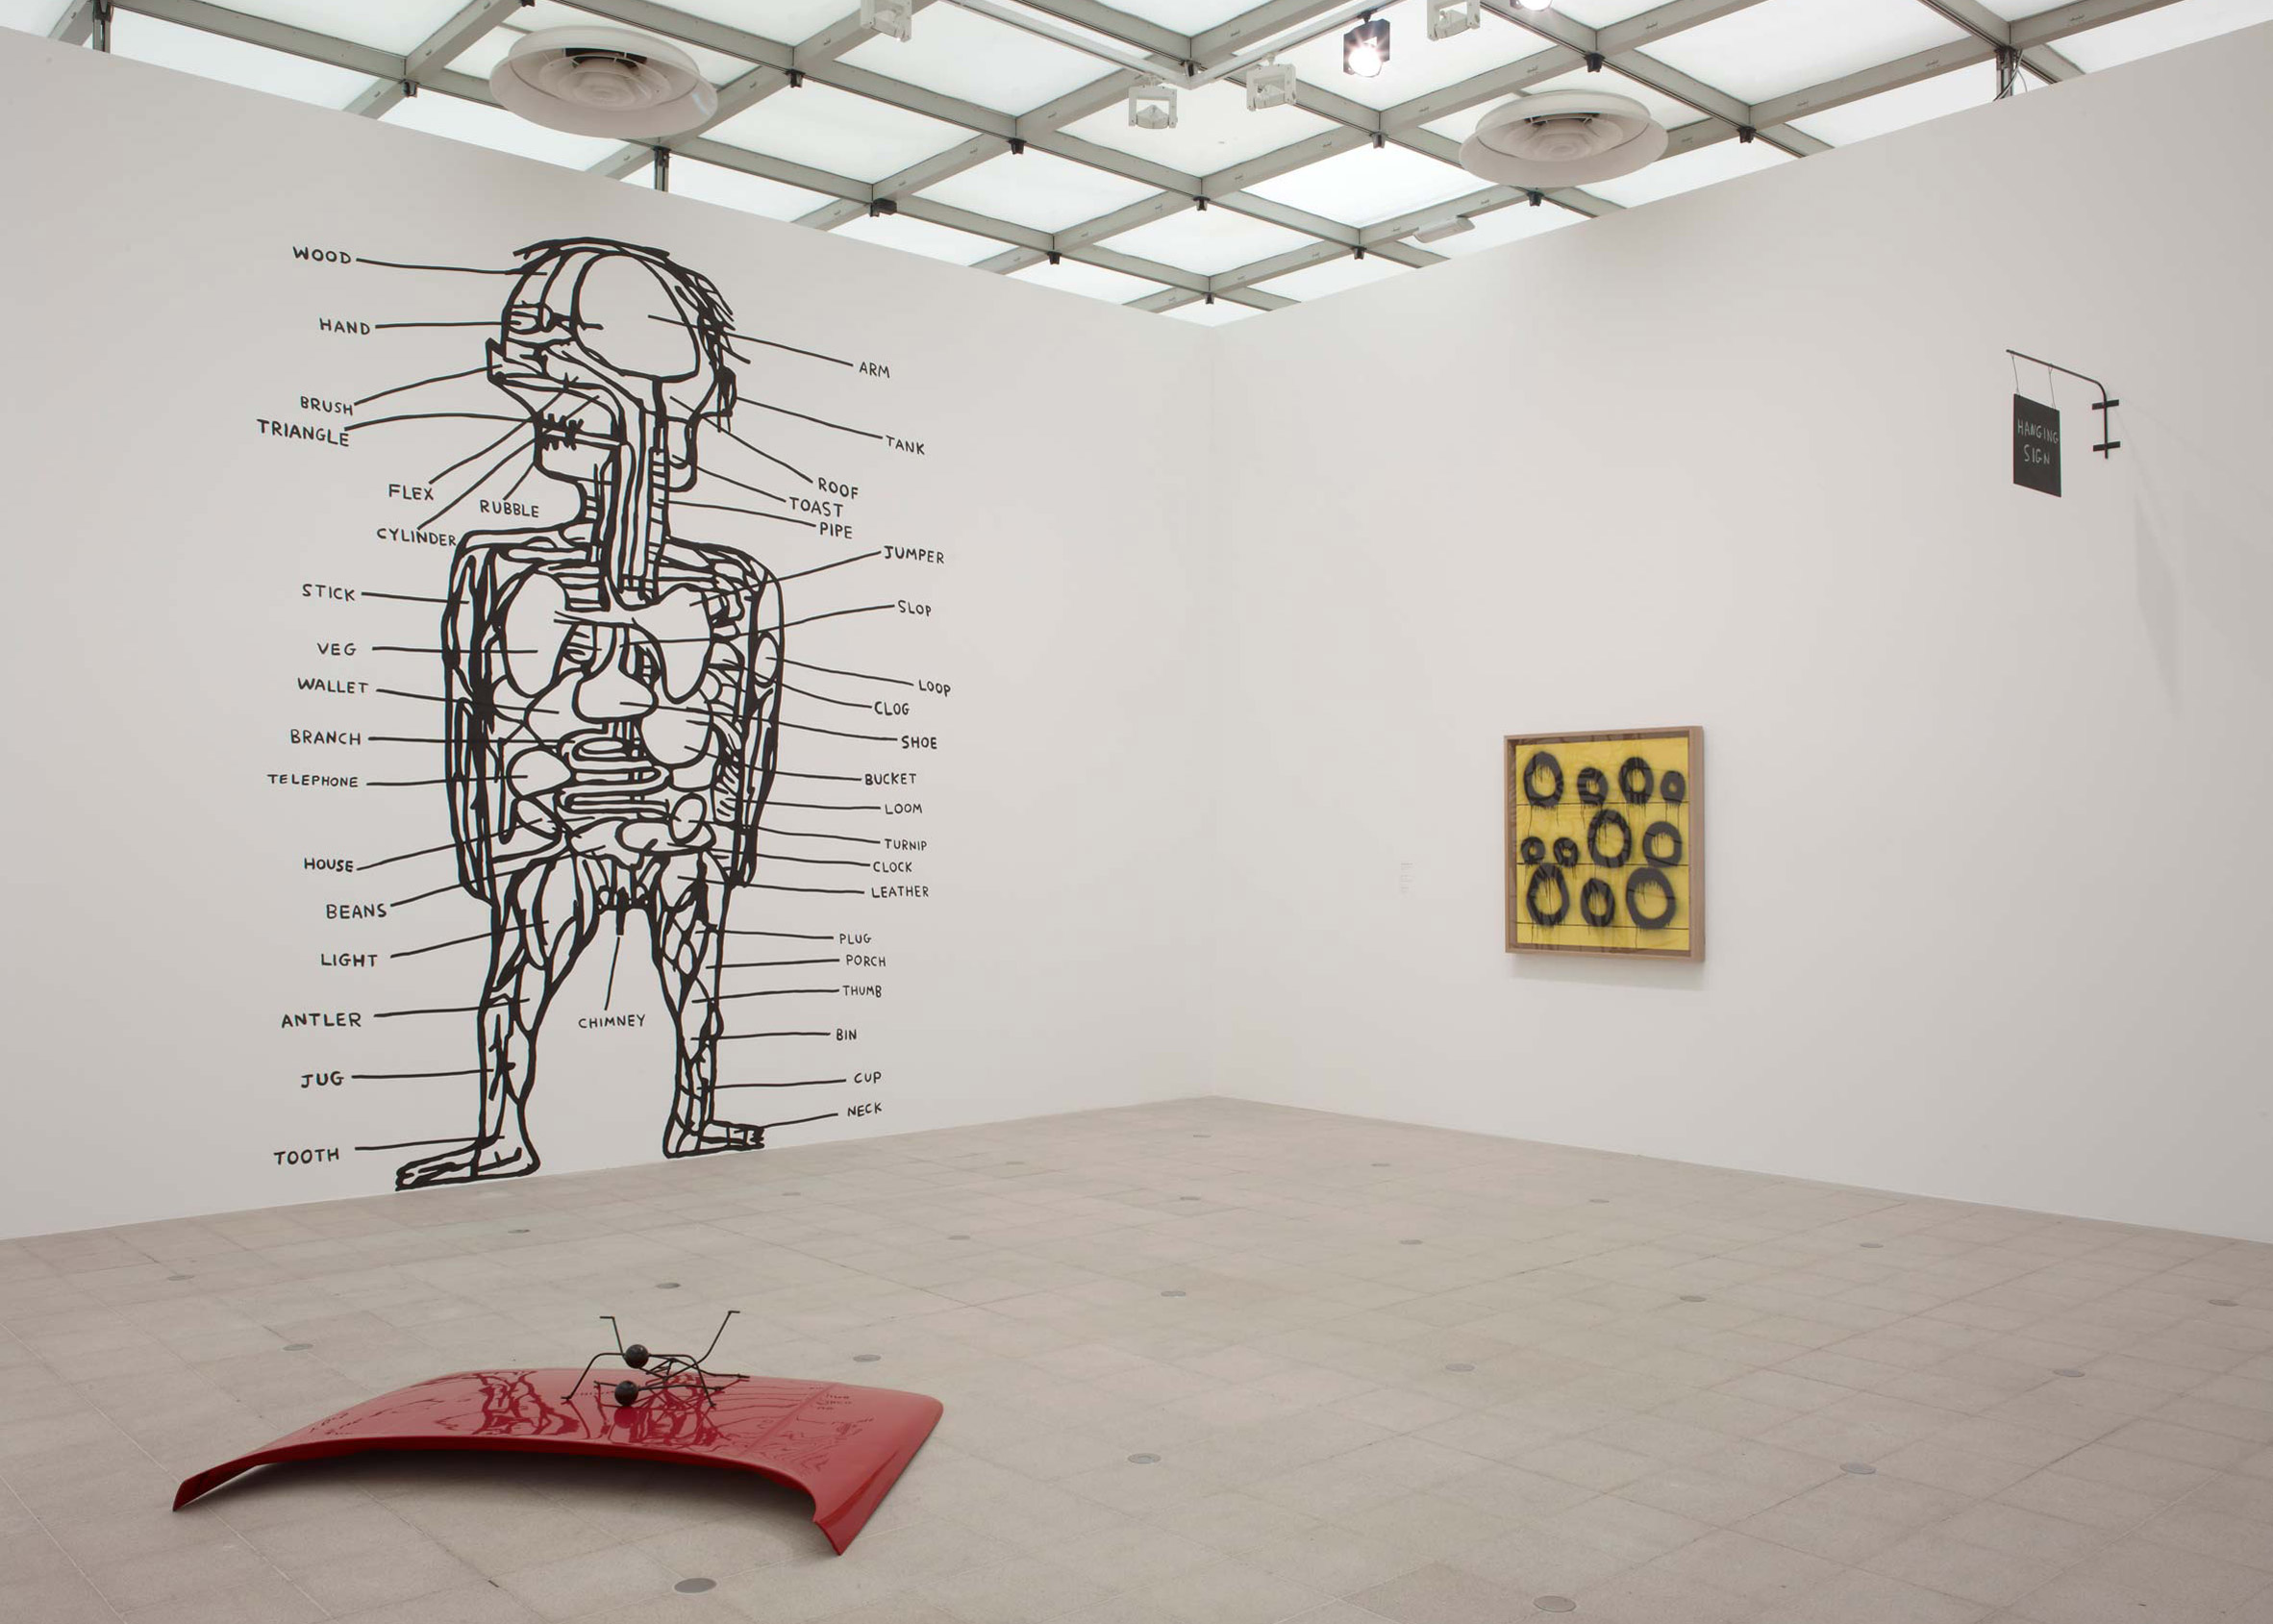 David Shrigley: Brain Activity at the Hayward Gallery, 2012. Image courtesy of Stephen Friedman Gallery